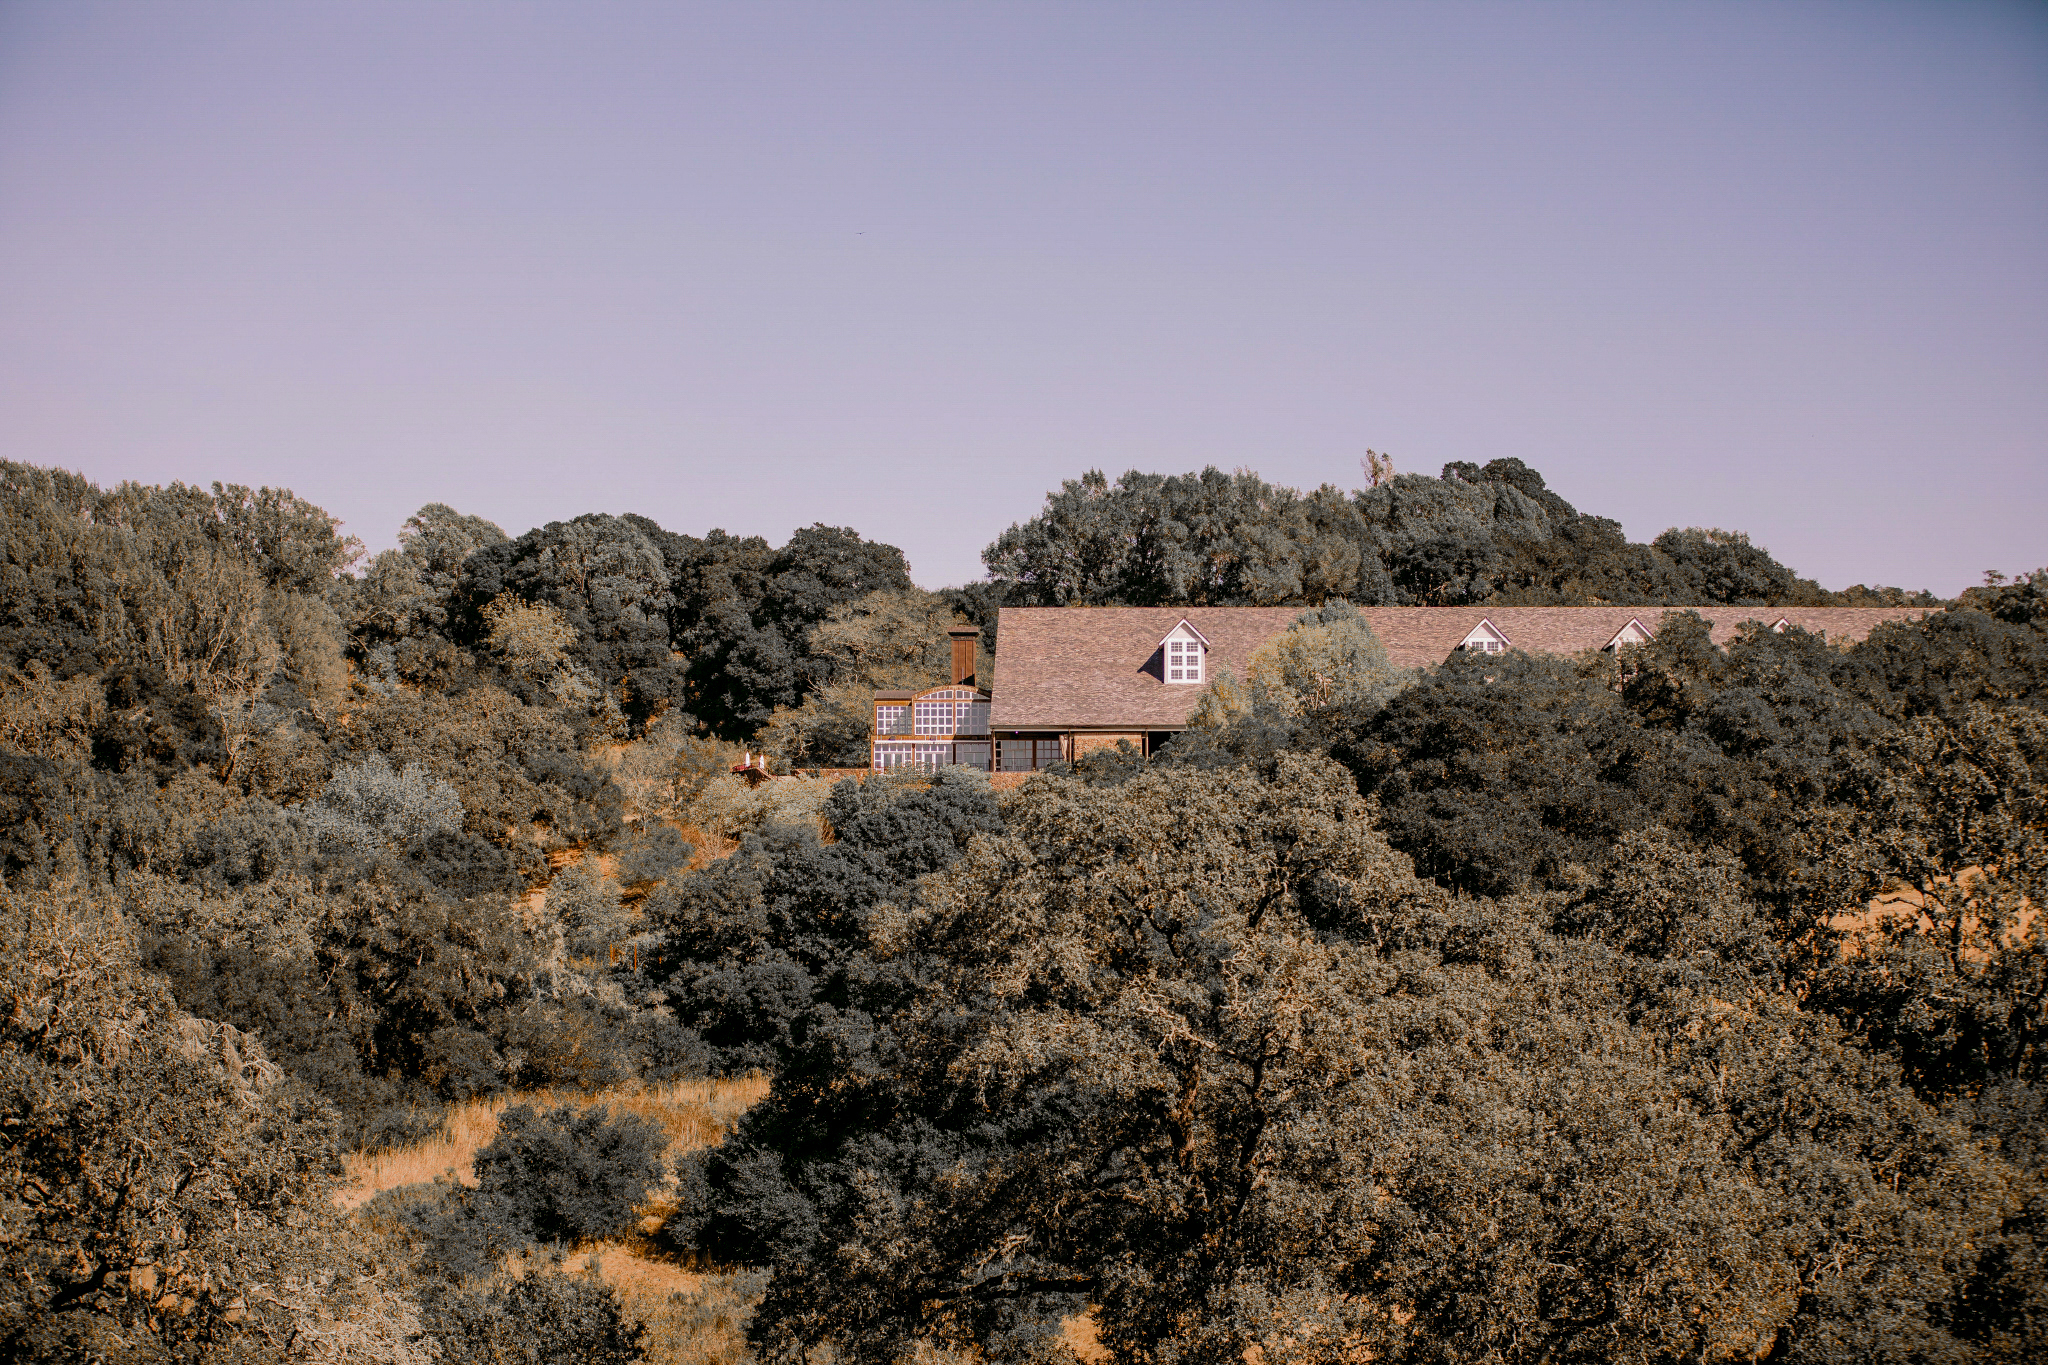 san diego wedding   photographer | scenery of place filled with trees and with a house in view